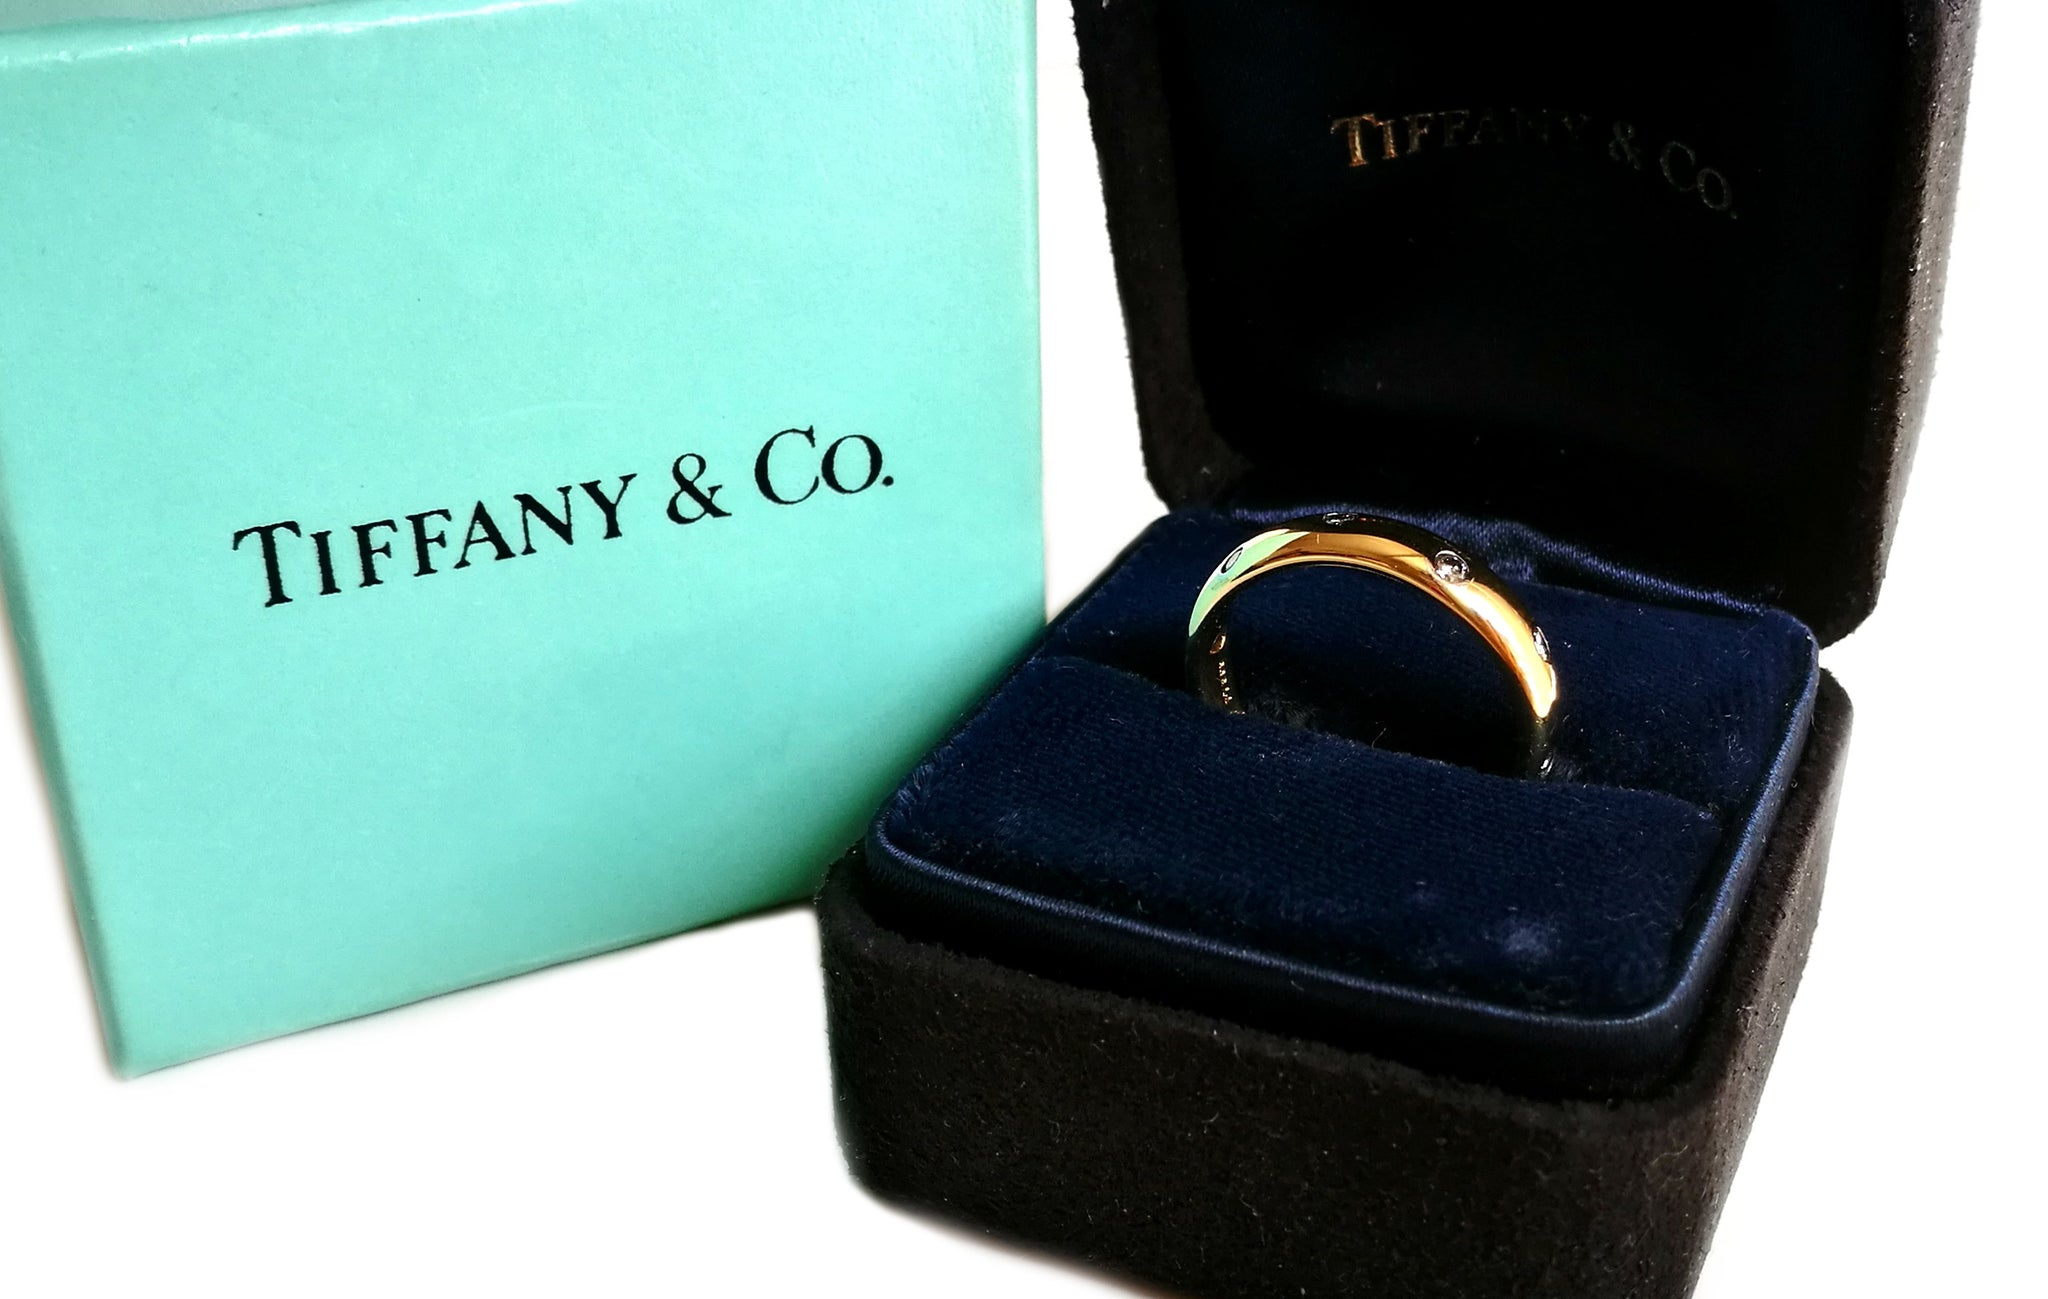 Tiffany & Co Etoile Yellow Gold 4mm Ring SZ L